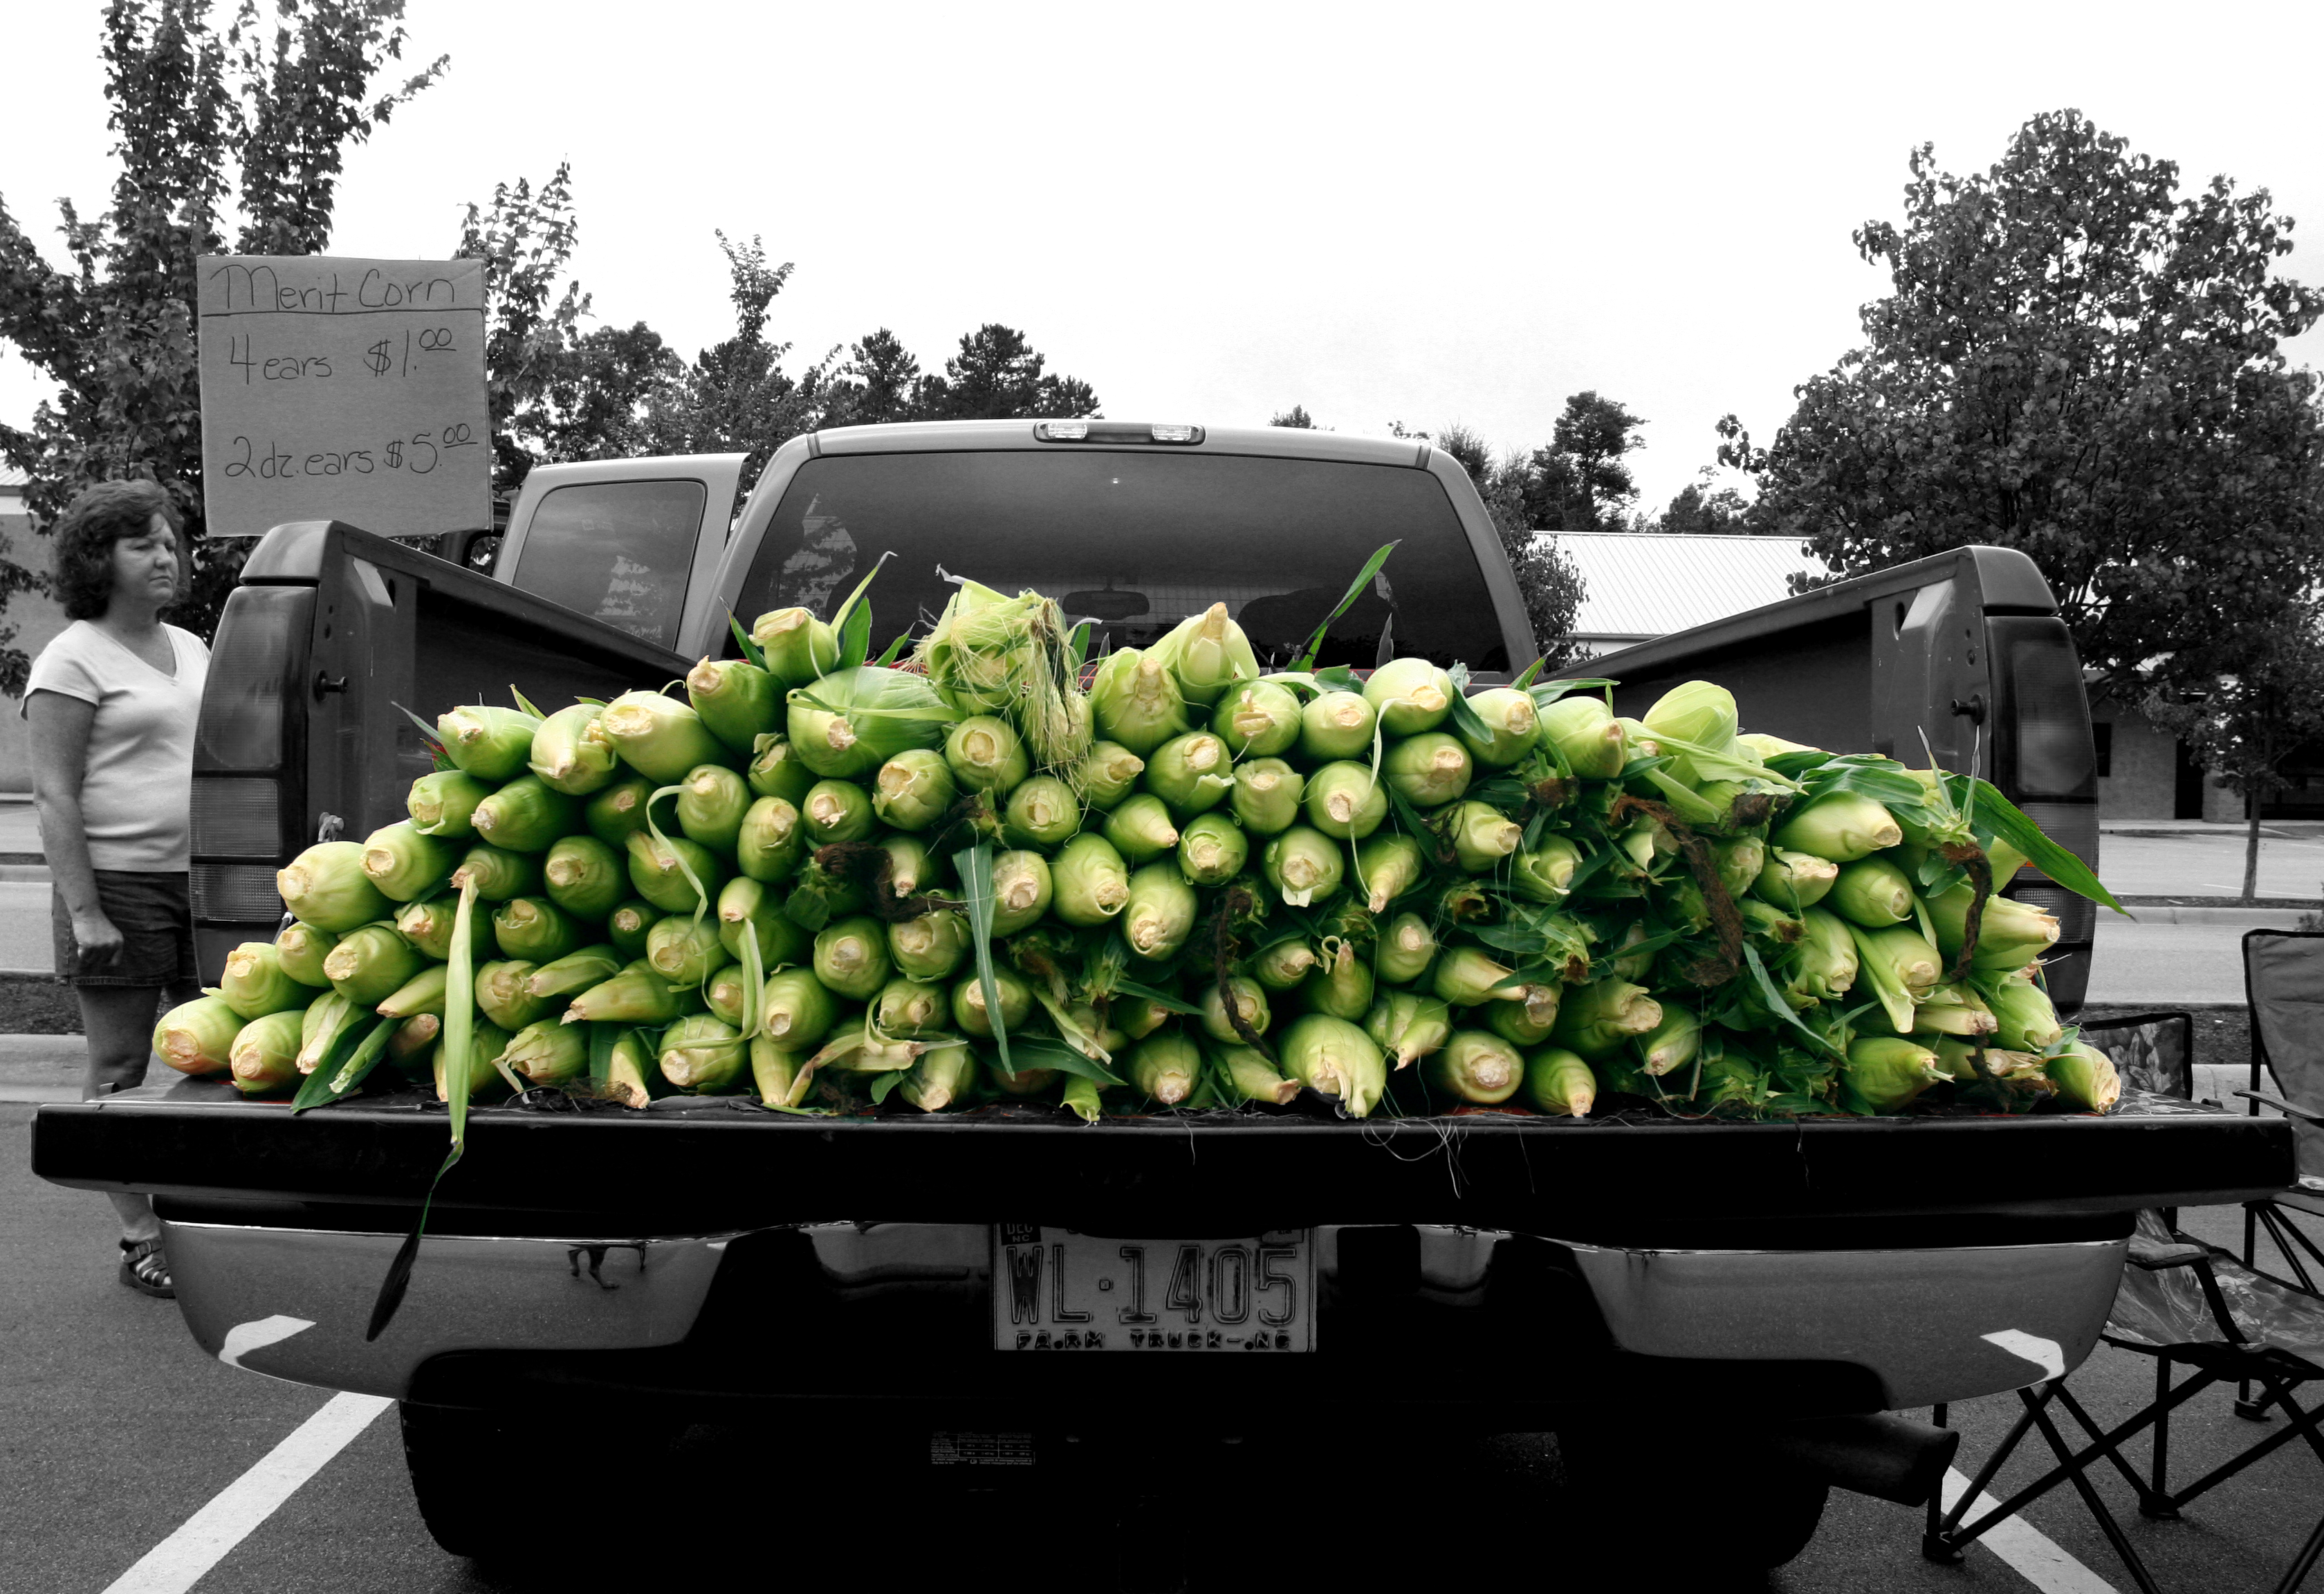 Fresh corn in the back of a truck